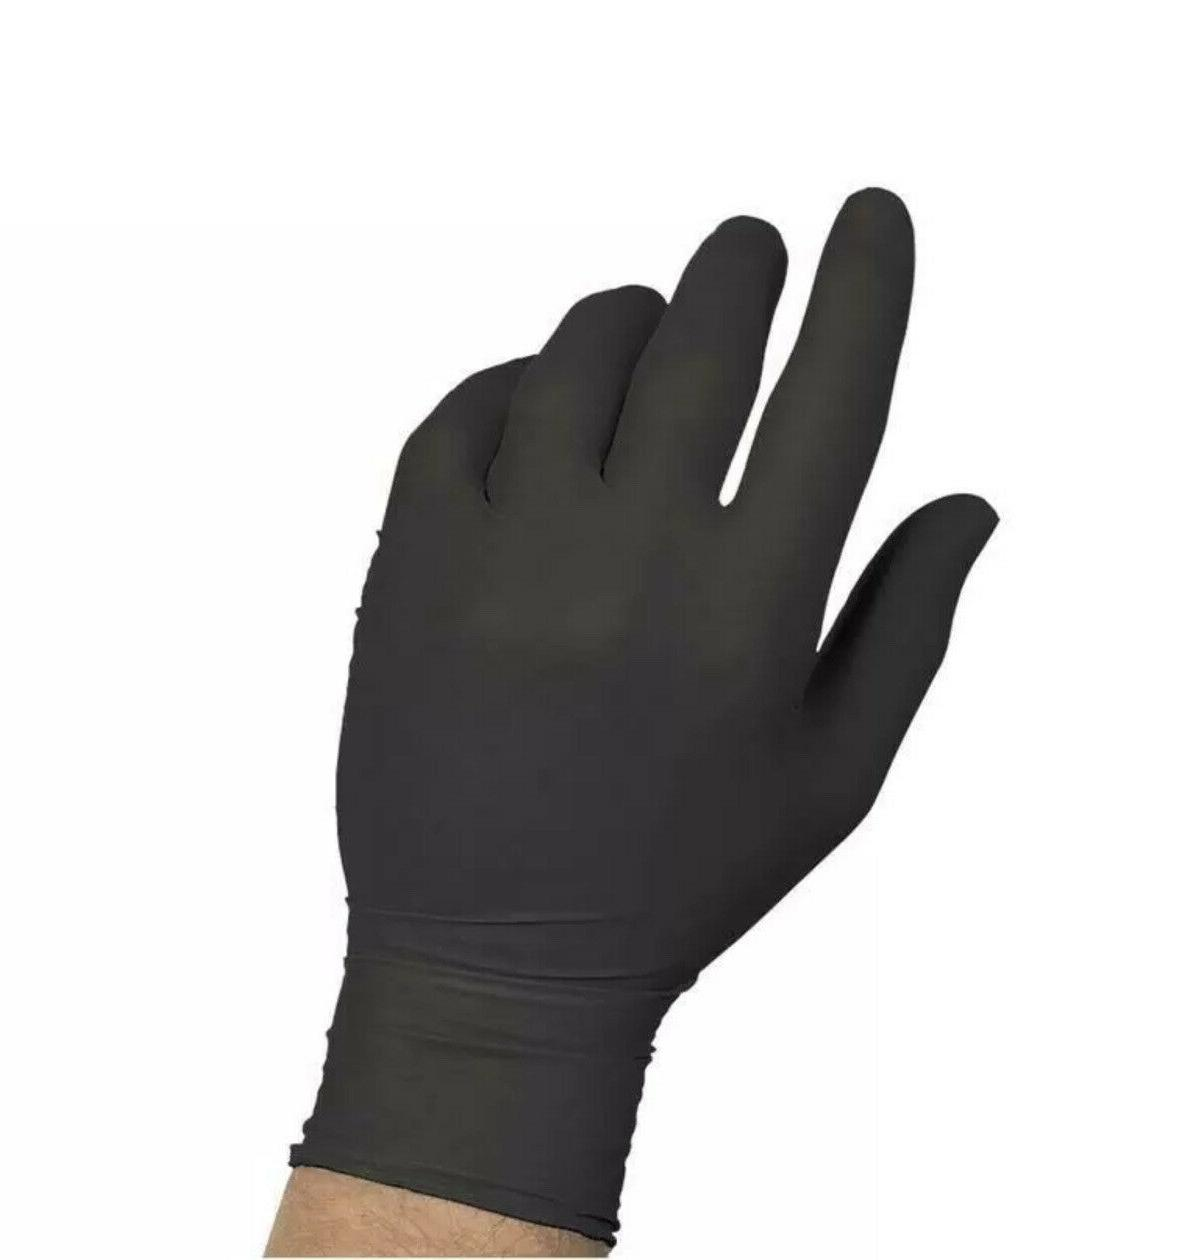 100 piece black nitrile rubber gloves latex